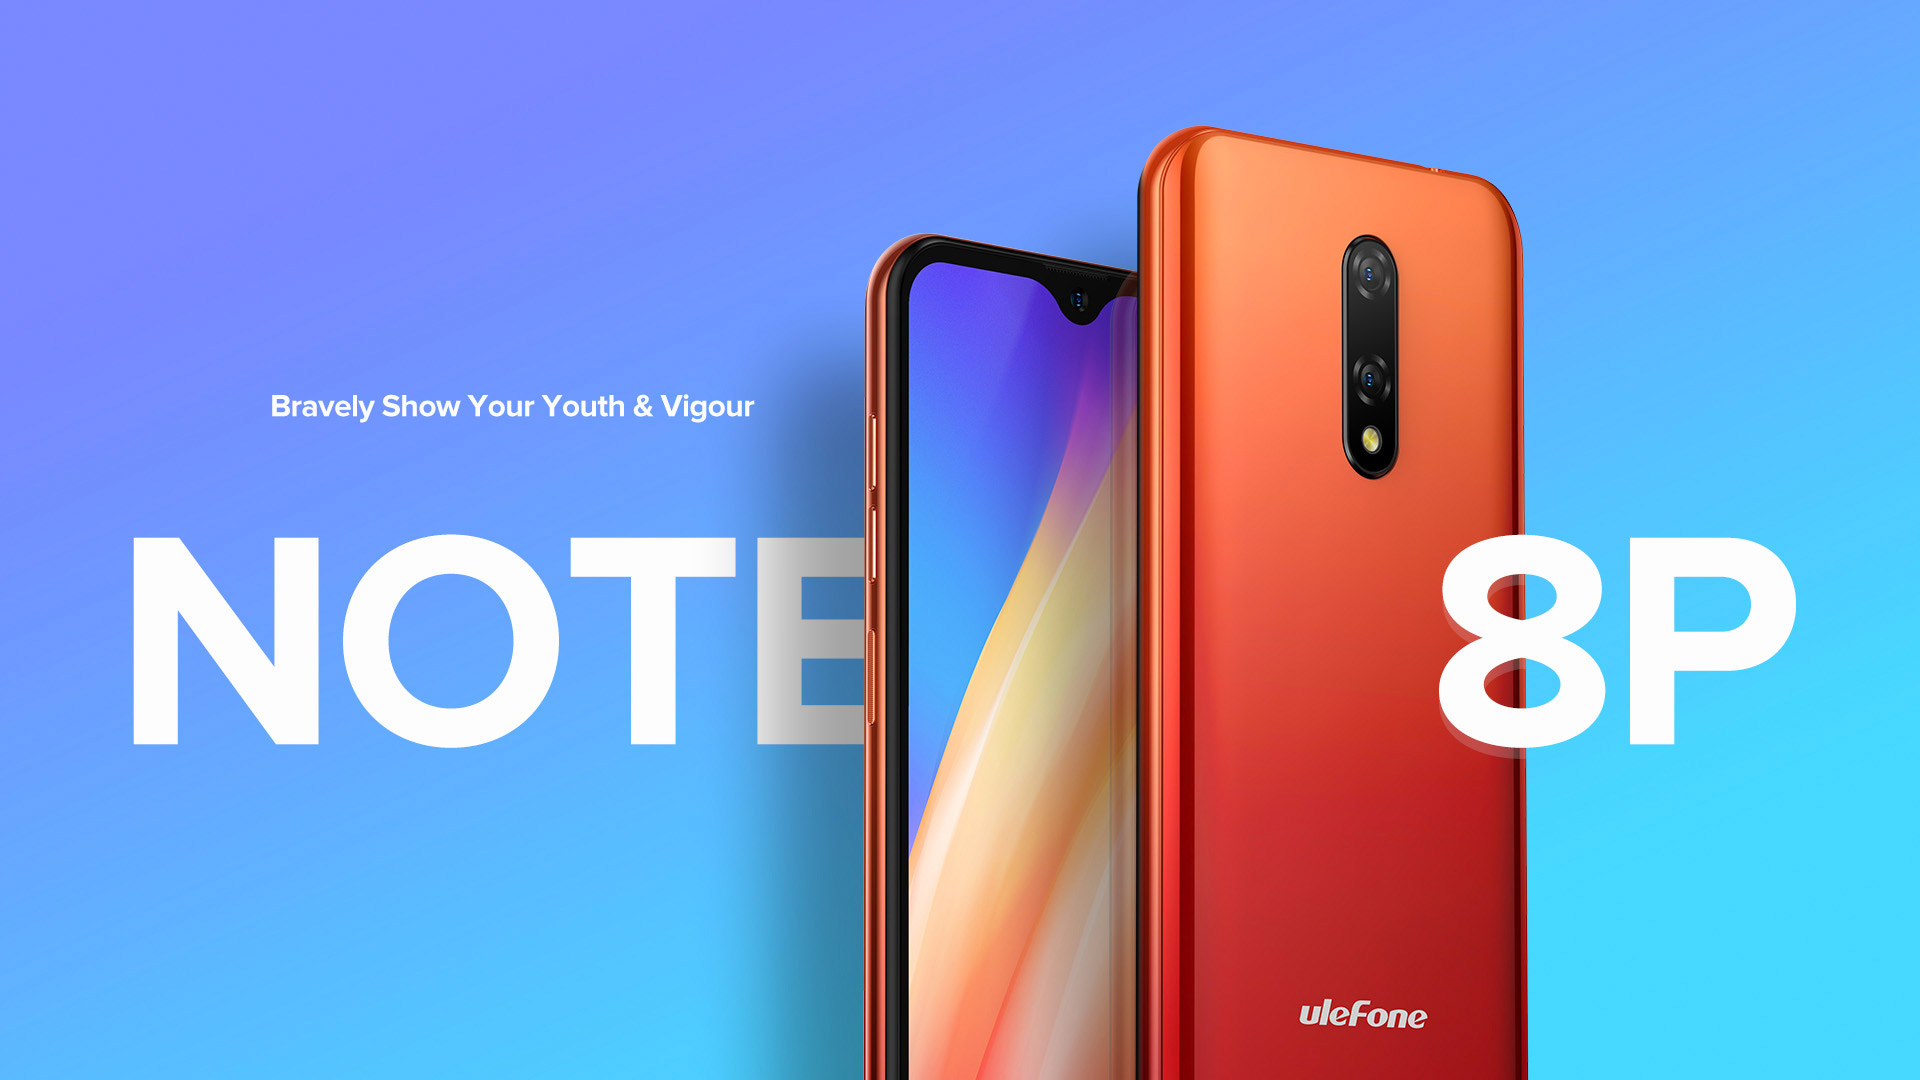 Ulefone Note 8P 4G Phablet 5.5 inch Android 10 Go Edition MT6737VW 2GB RAM 16GB ROM 8MP + 2MP Rear Camera 2700mAh Battery Global Version - Red